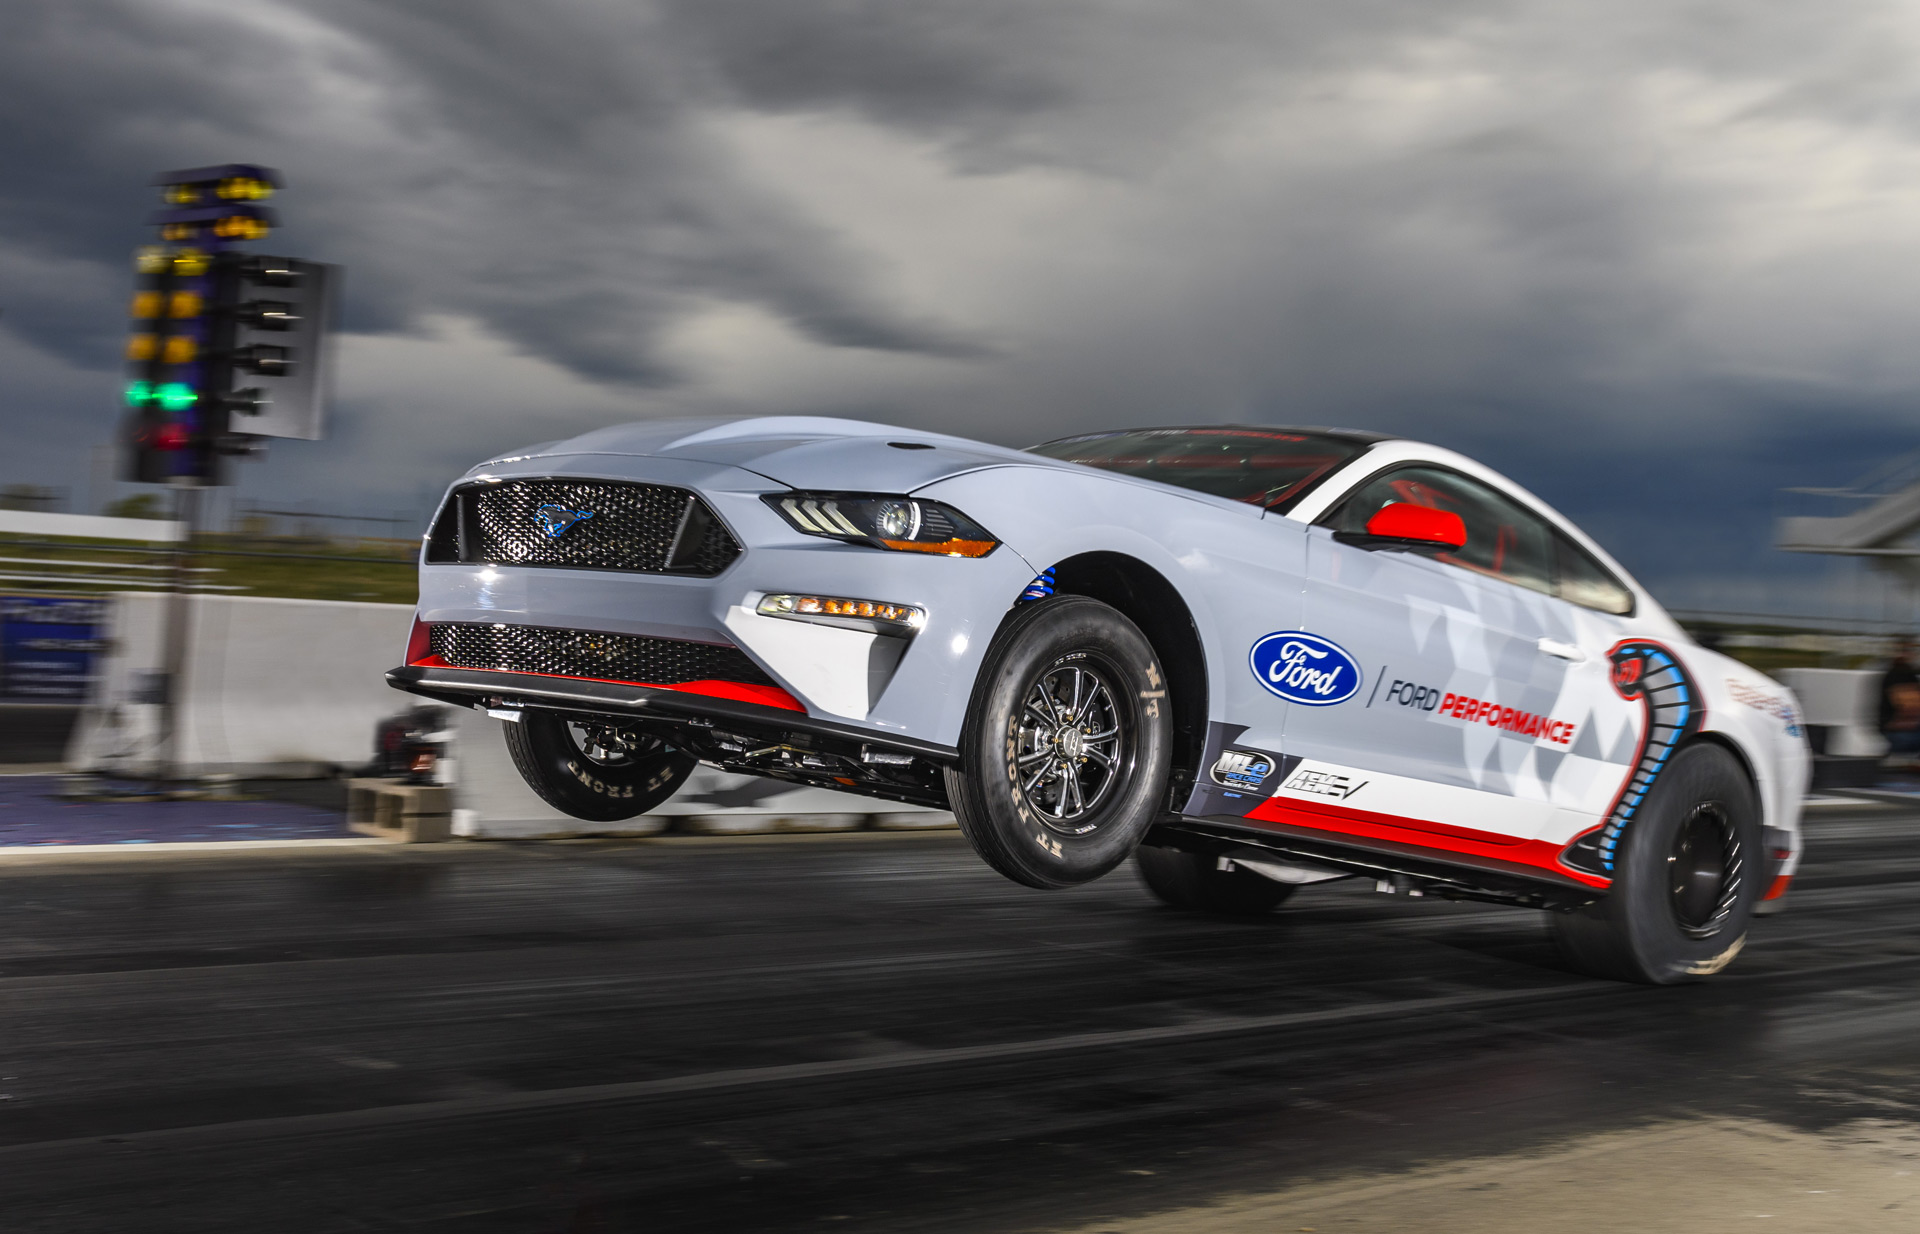 Electric Ford Mustang Cobra Jet 1400 hits harder than expected